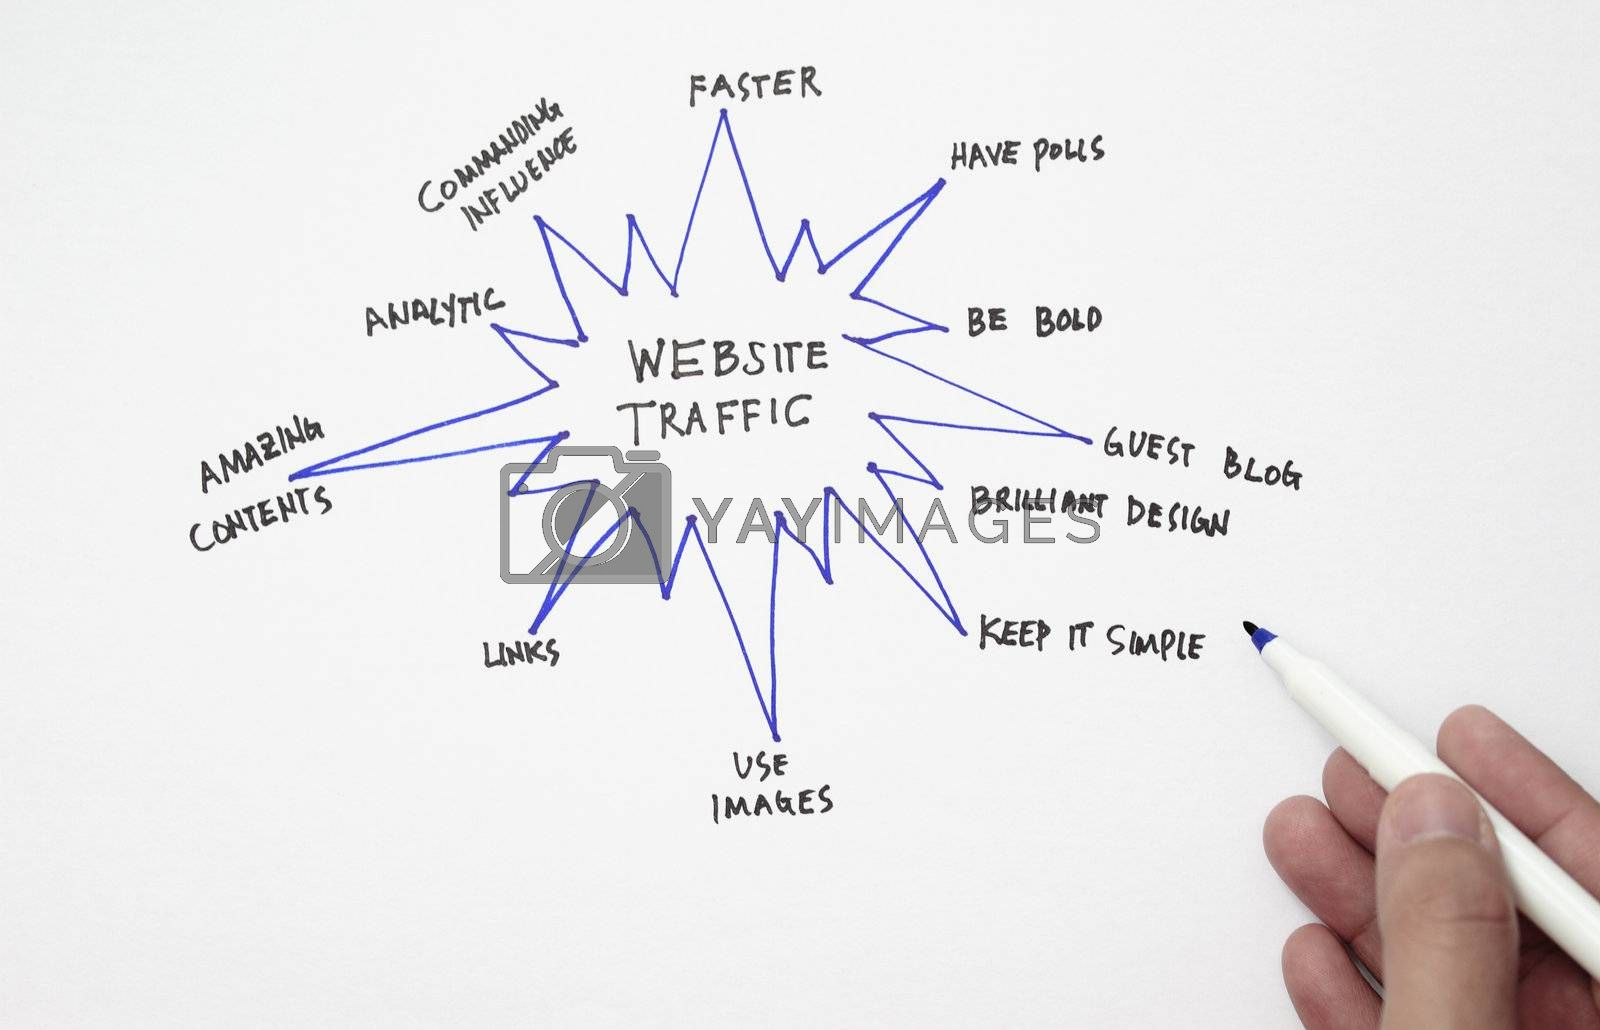 Website traffic chart concept for attracting visitors to your website.